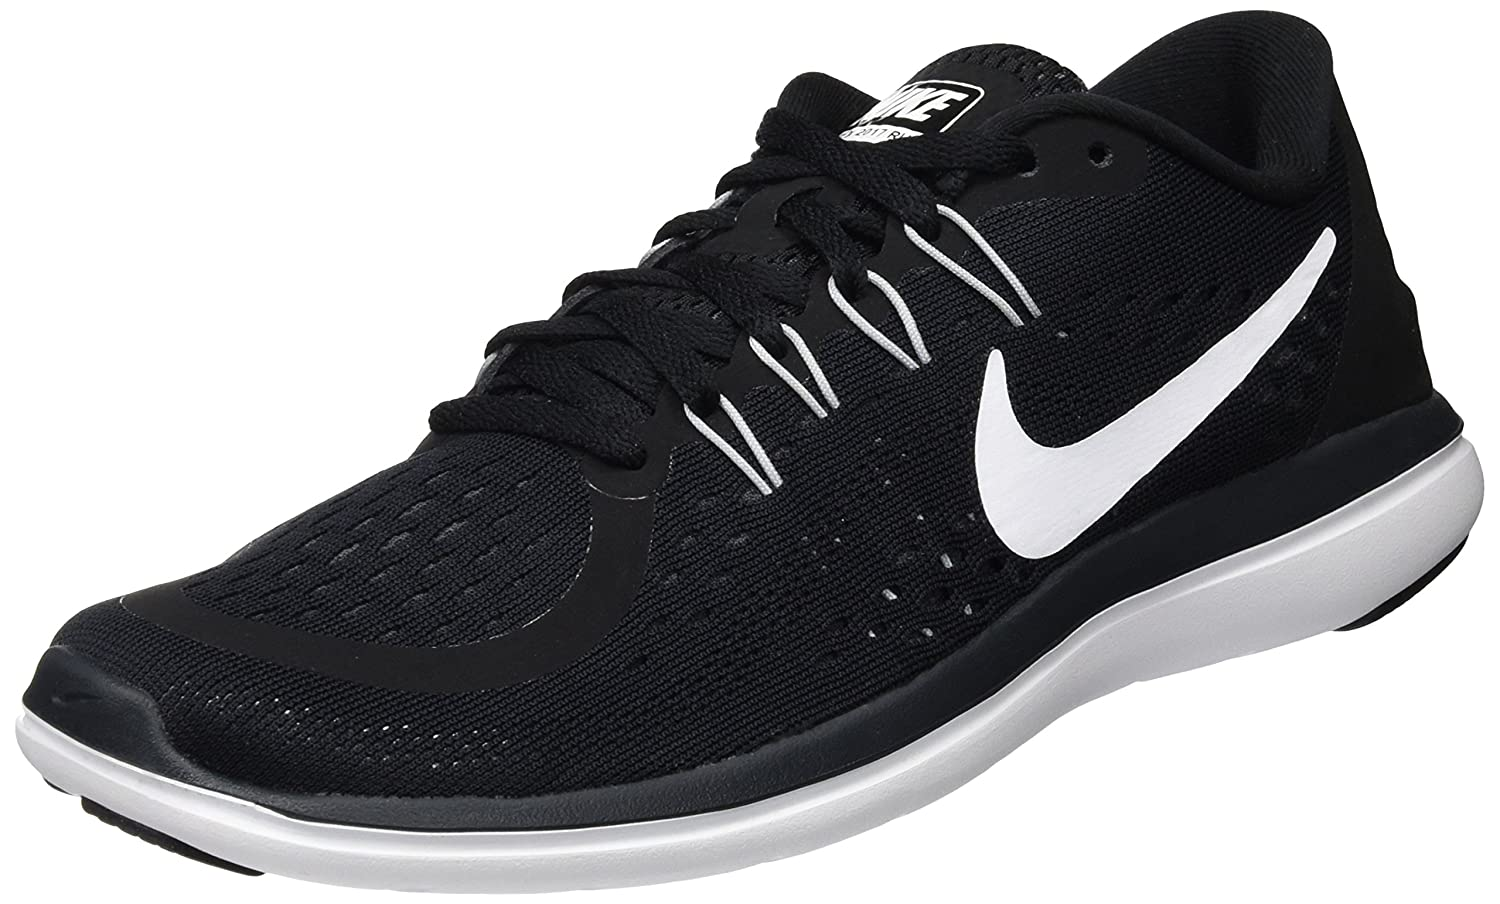 new product a7f3e 8440a Nike Women's Flex 2017 Rn Black/White - Anthracite Ankle-High Cross Country  Running Shoe 7M